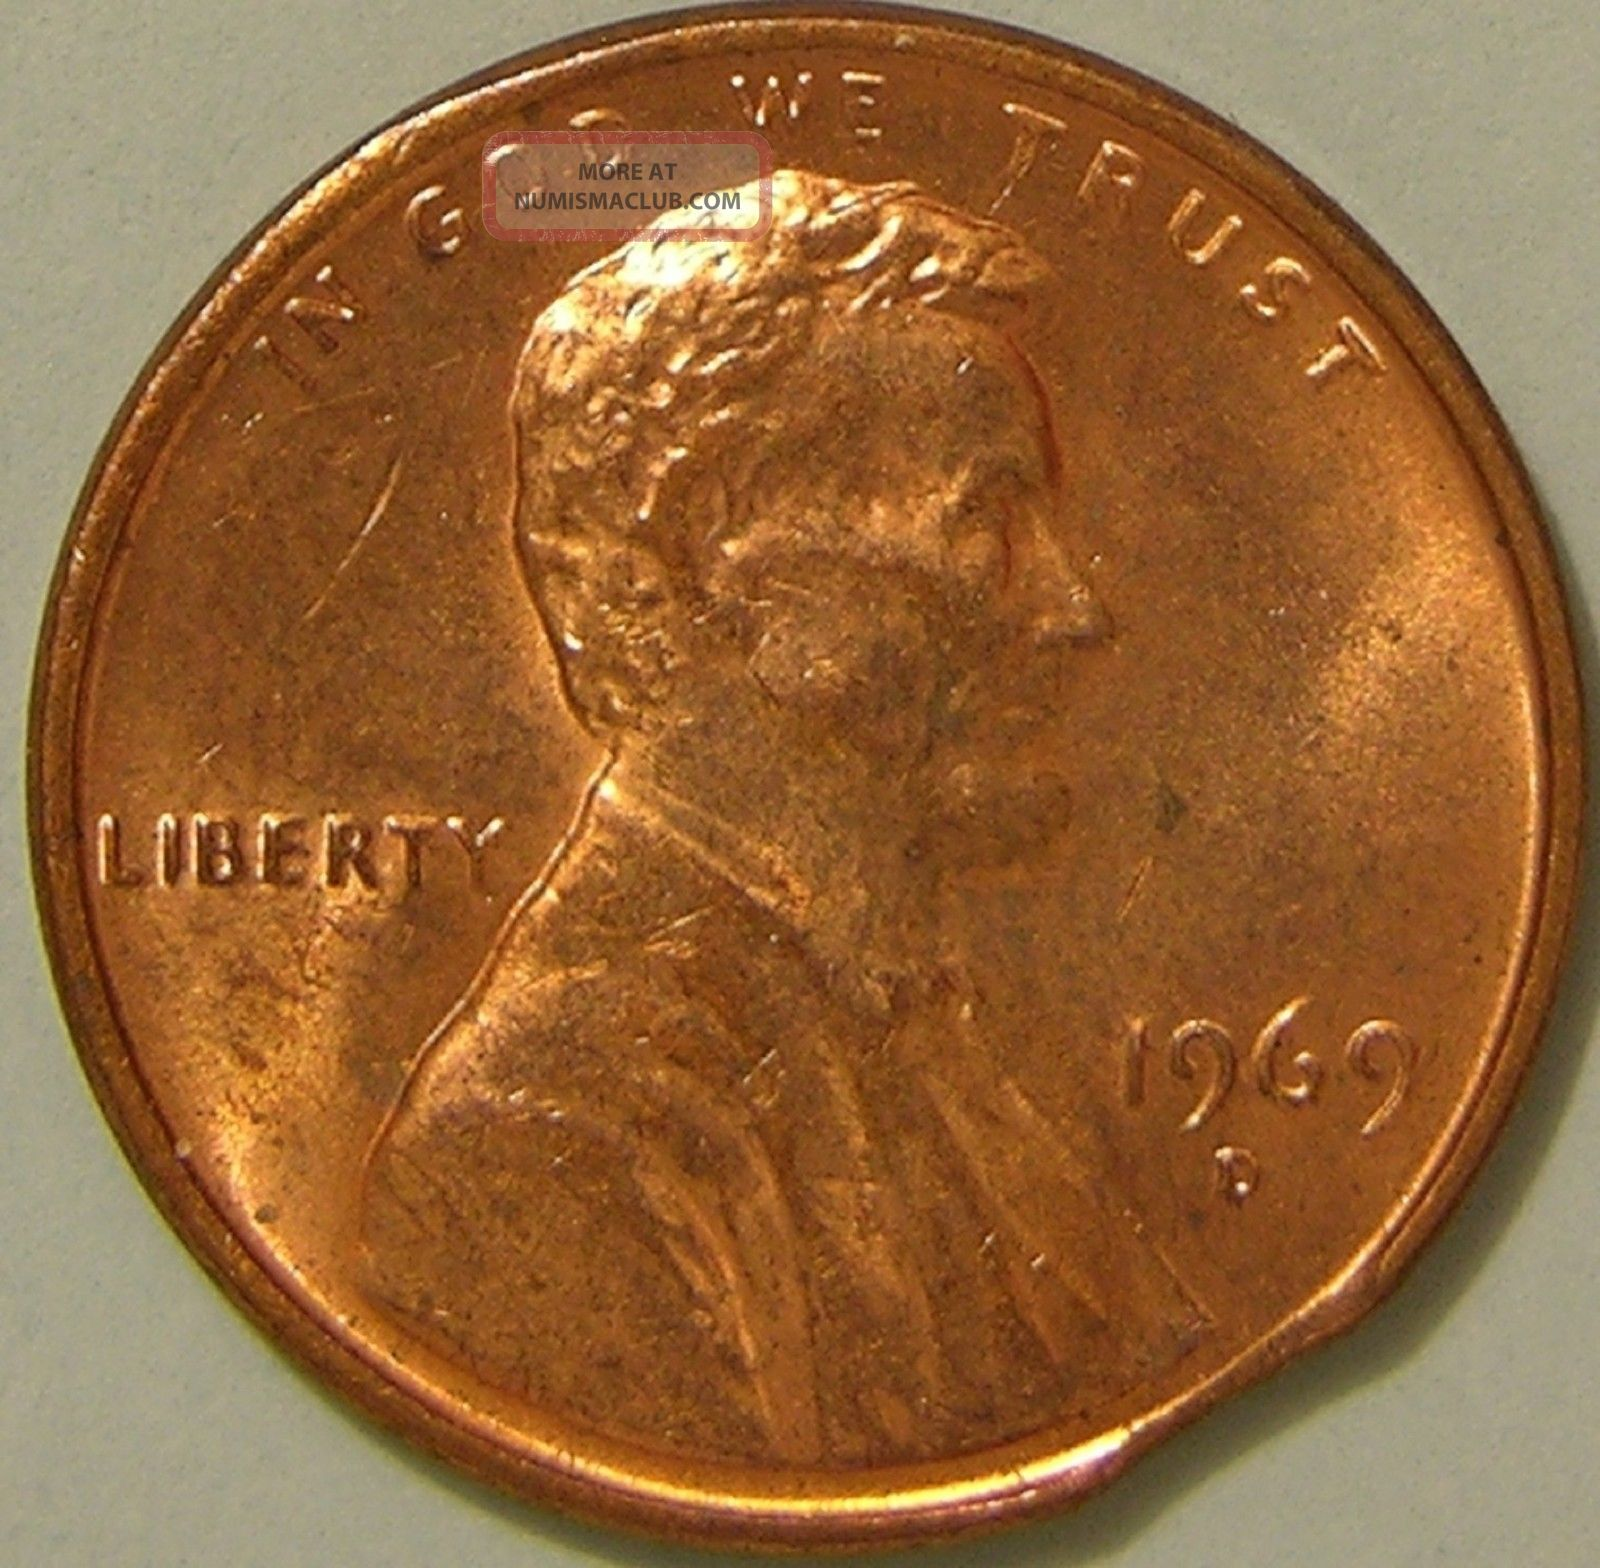 1969 D Lincoln Memorial Penny Clipped Planchet Error Coin Af 59